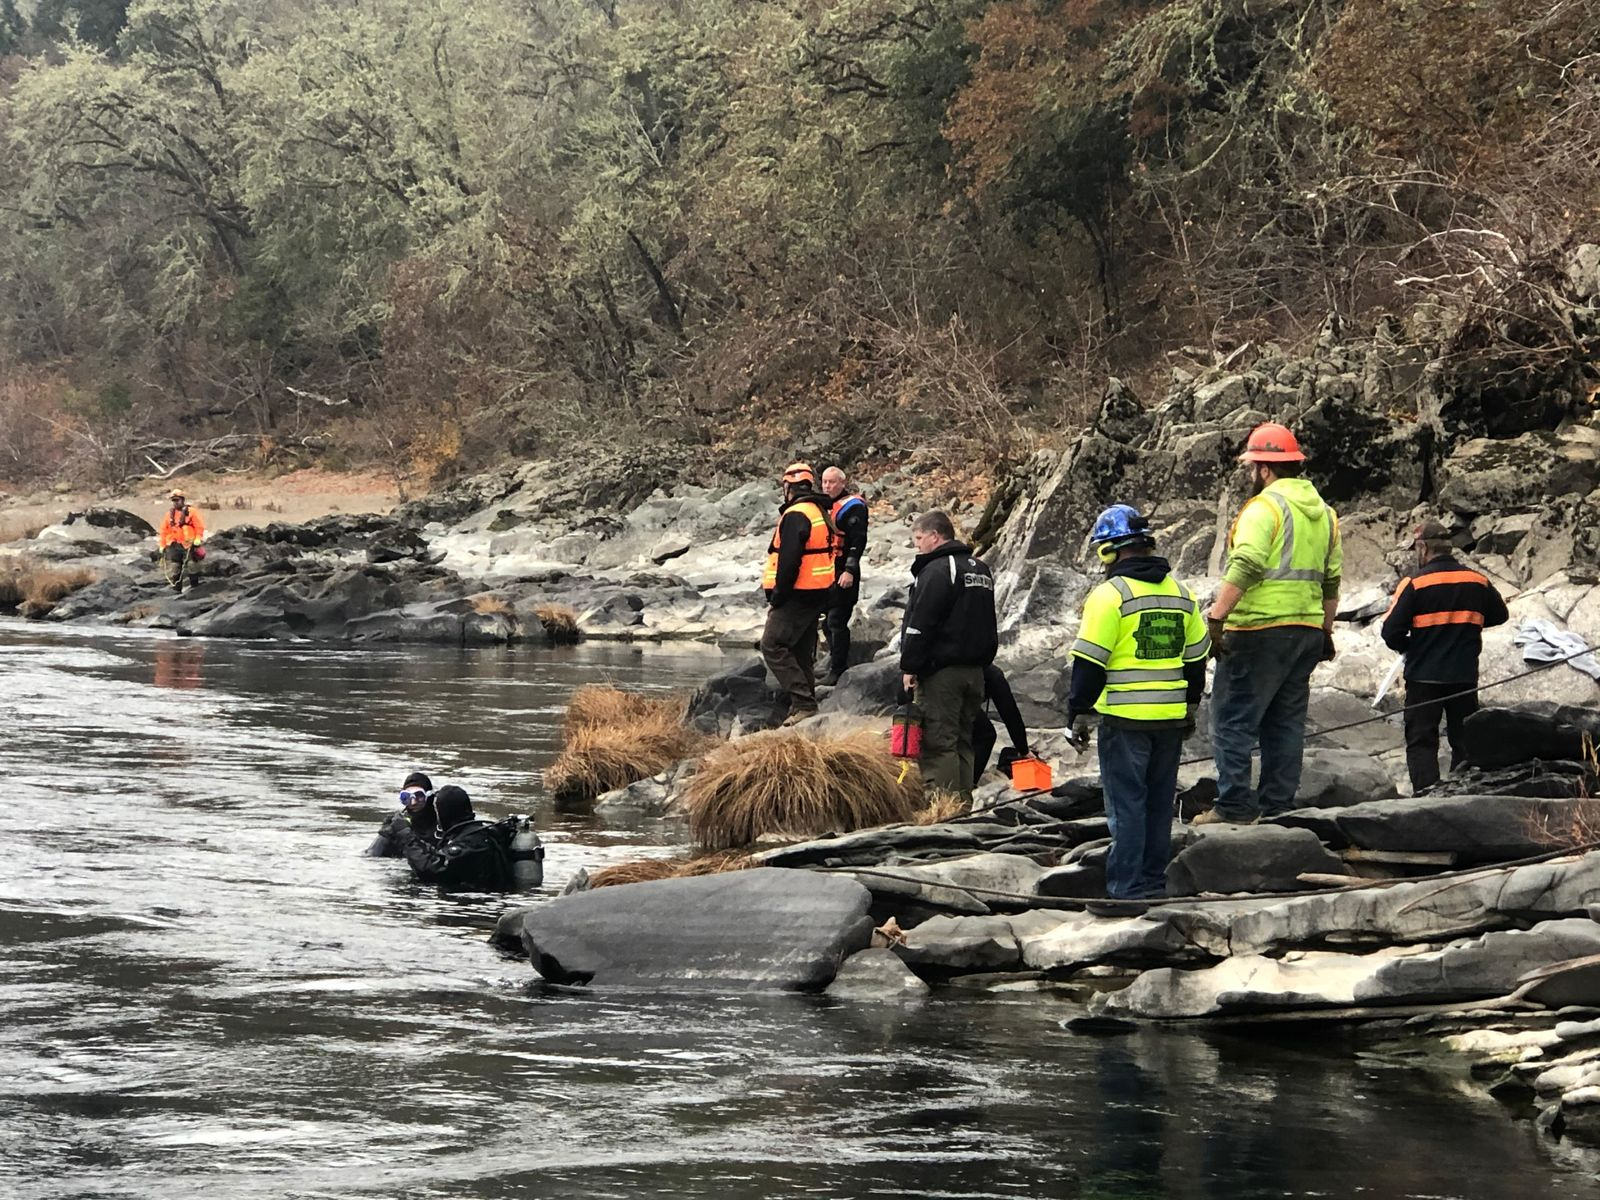 The Douglas County Sheriff's Office recovered the 2002 Chevy Trailblazer from the Umpqua River on Thursday. They found both Sean Moss, 29, and his daughter Madison inside. The two had been reported missing in August 2019. (DCSO)